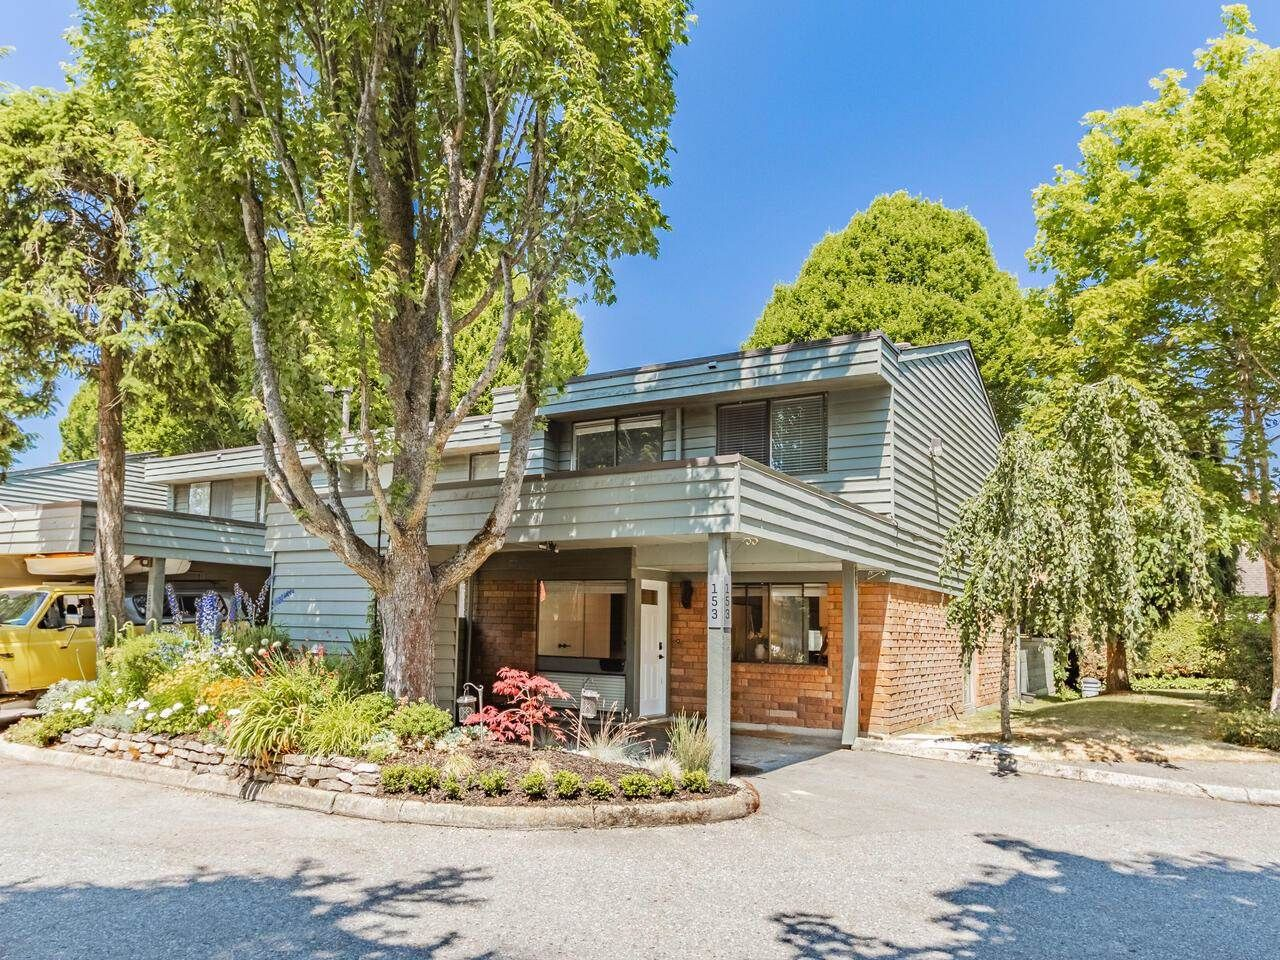 """Main Photo: 153 3031 WILLIAMS Road in Richmond: Seafair Townhouse for sale in """"Edgewater Park"""" : MLS®# R2597375"""